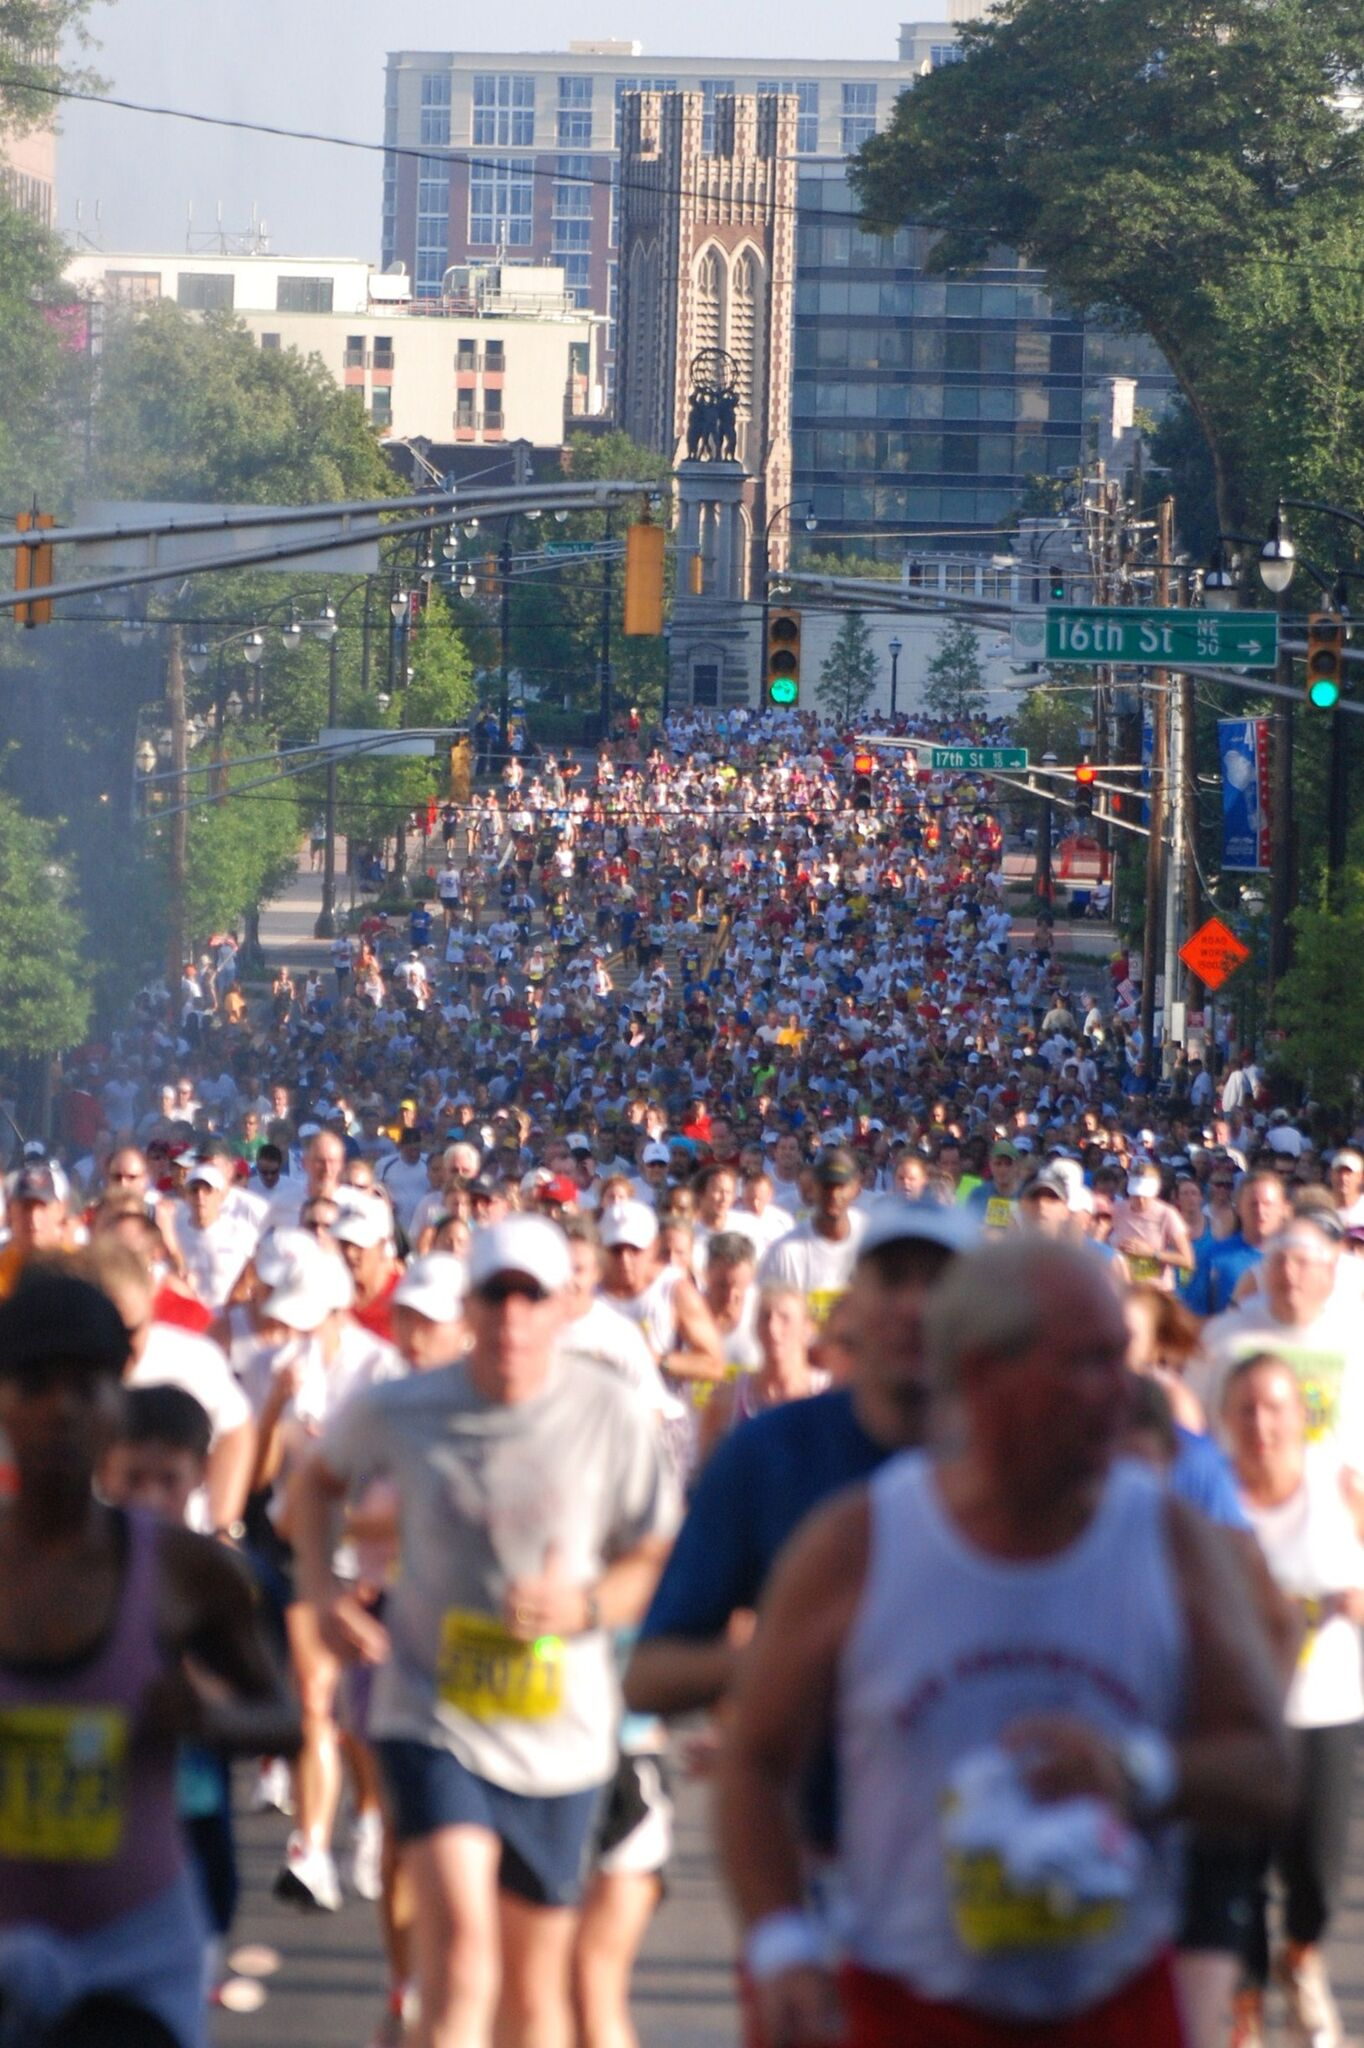 Midtown has been host to numerous running events, including the Peachtree Road Race (pictured), but this will be the first time Atlanta has hosted the Olympic Marathon Trials.